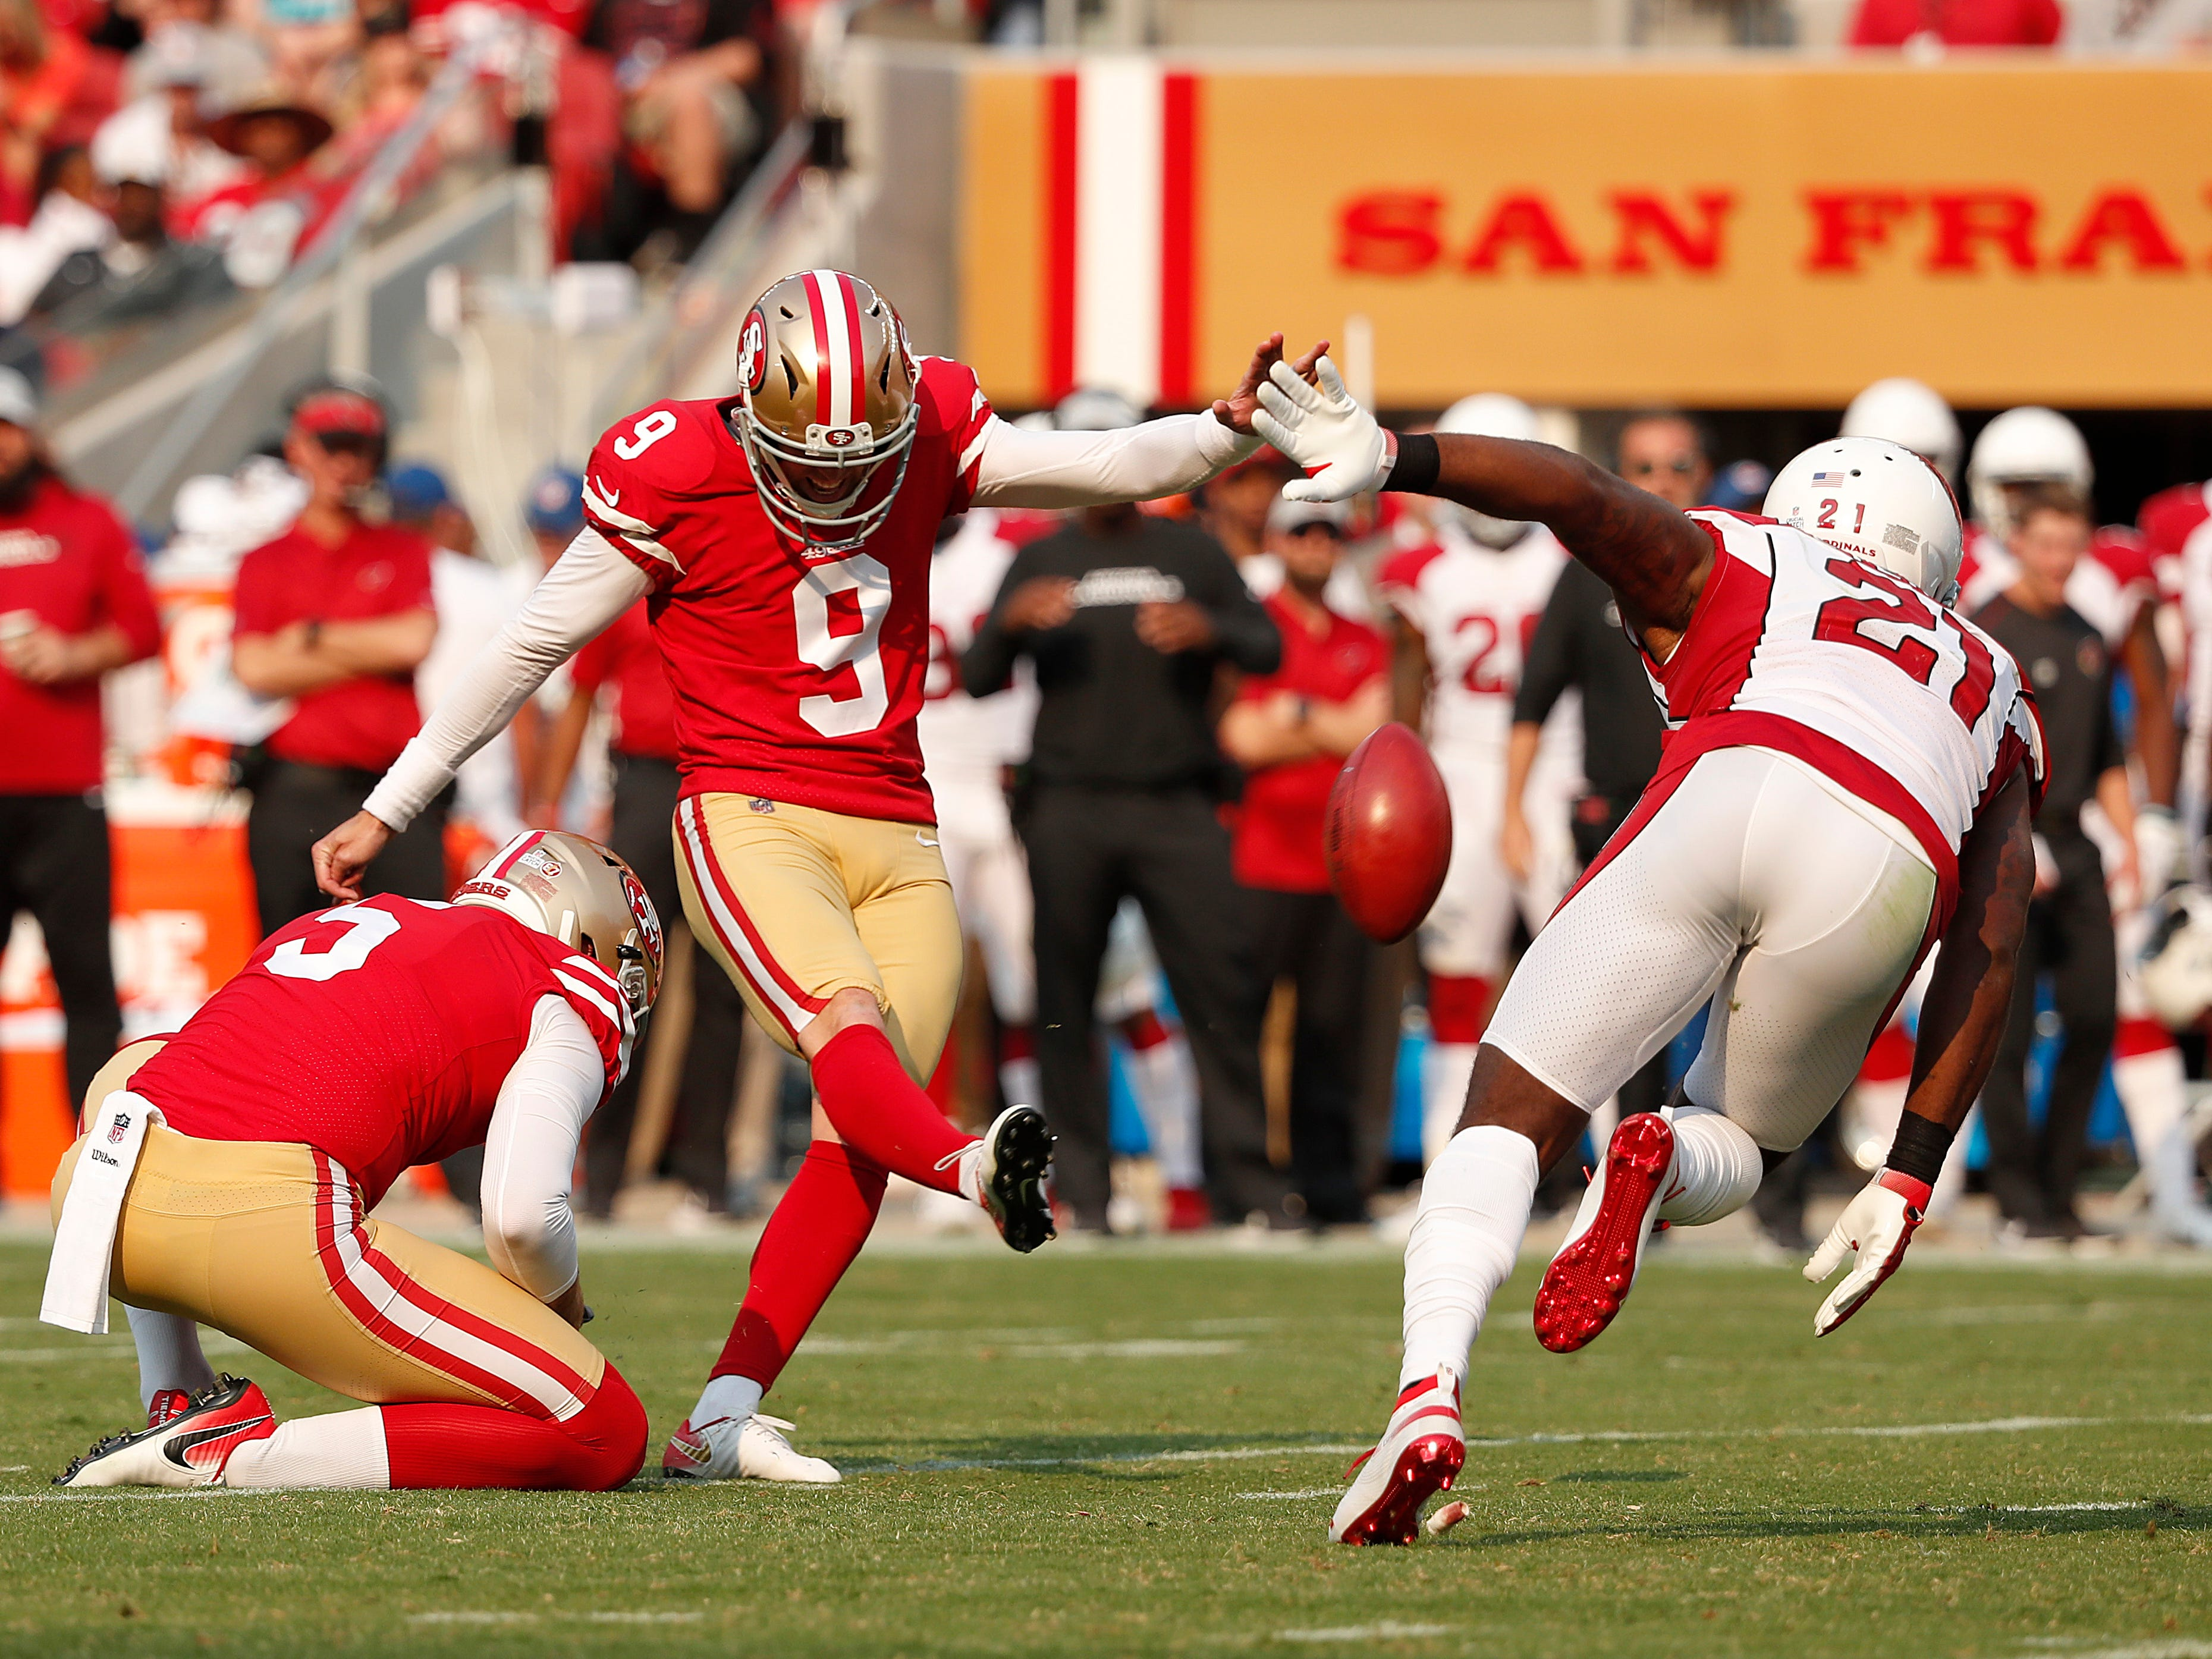 San Francisco 49ers kicker Robbie Gould (9) kicks a field goal attempt, which he missed, during the second half of an NFL football game against the Arizona Cardinals in Santa Clara, Calif., Sunday, Oct. 7, 2018.